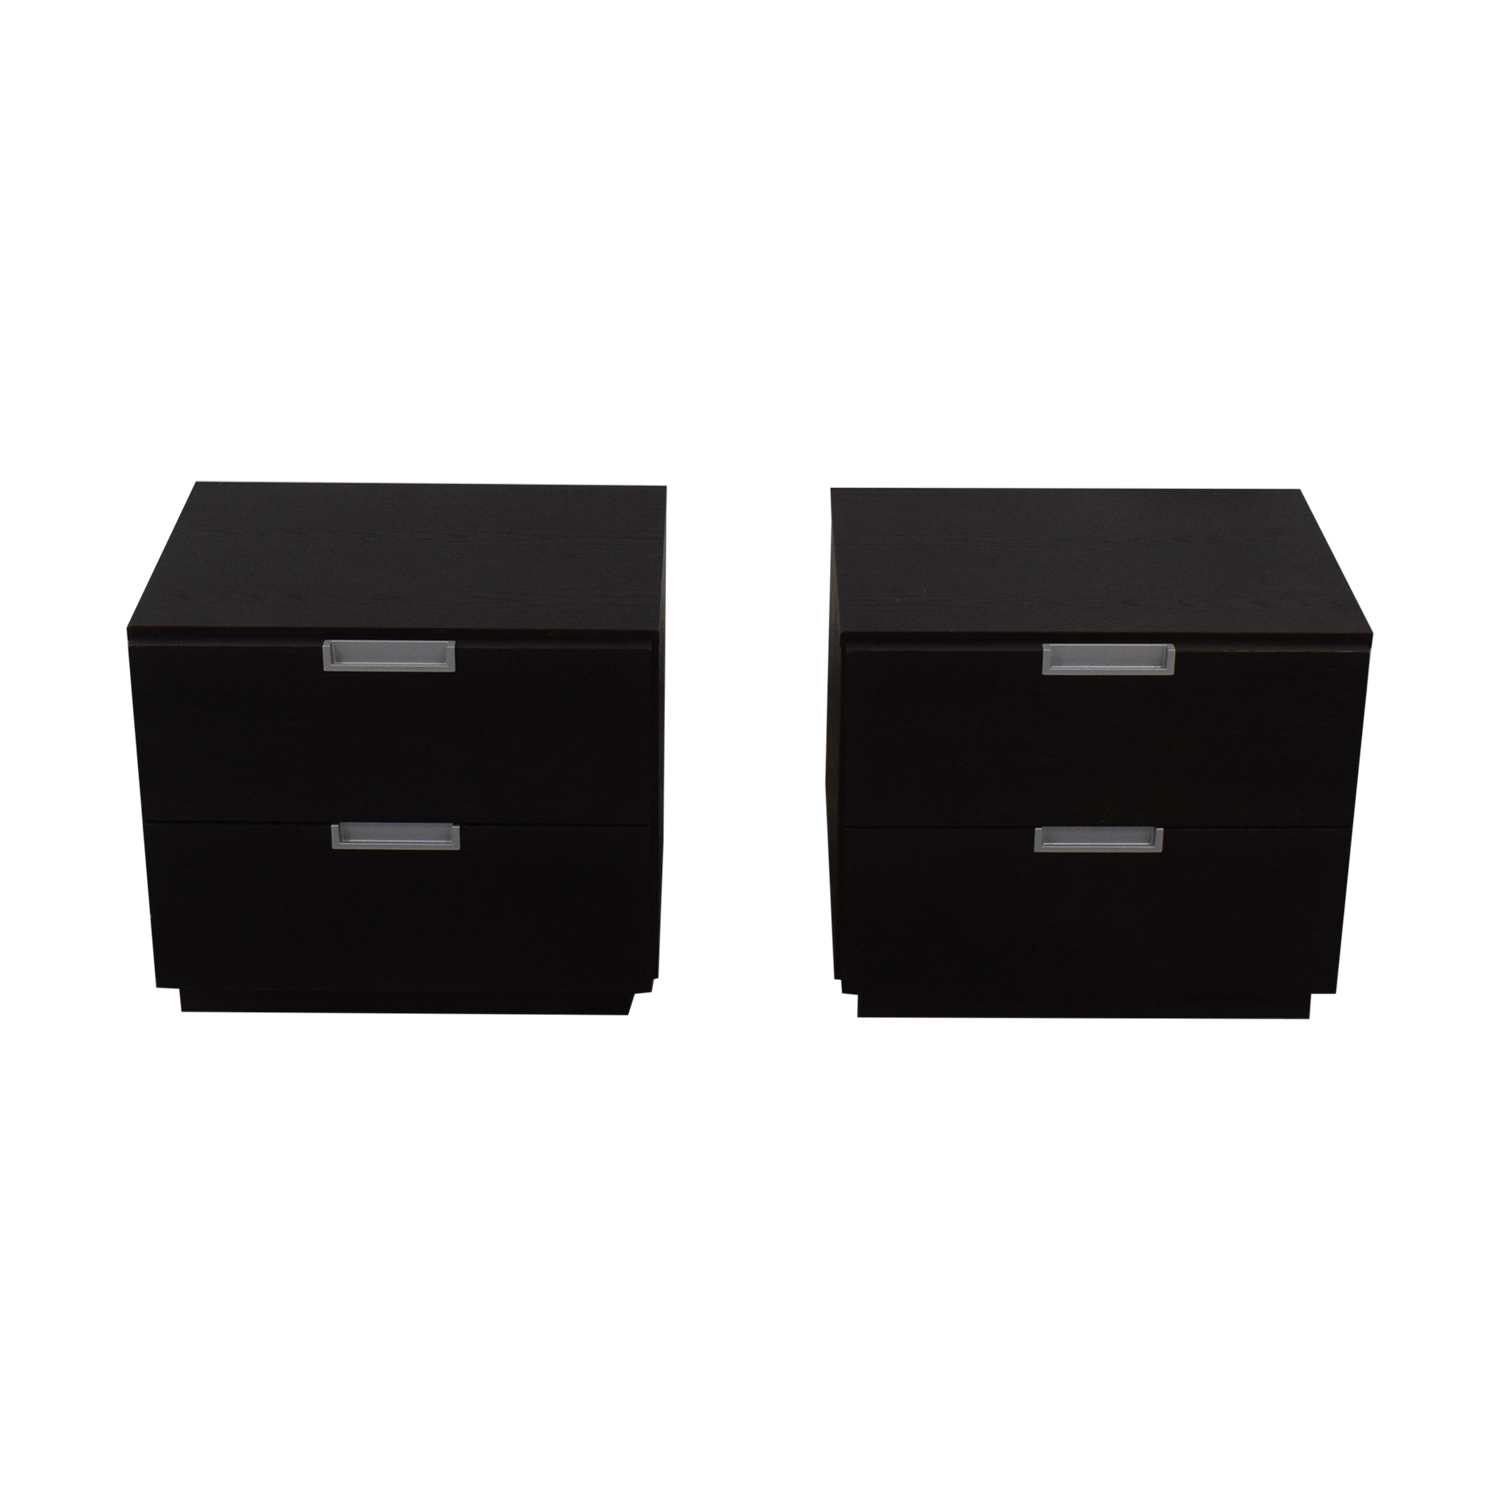 shop Jensen-Lewis Modern Nightstands Jensen-Lewis Tables